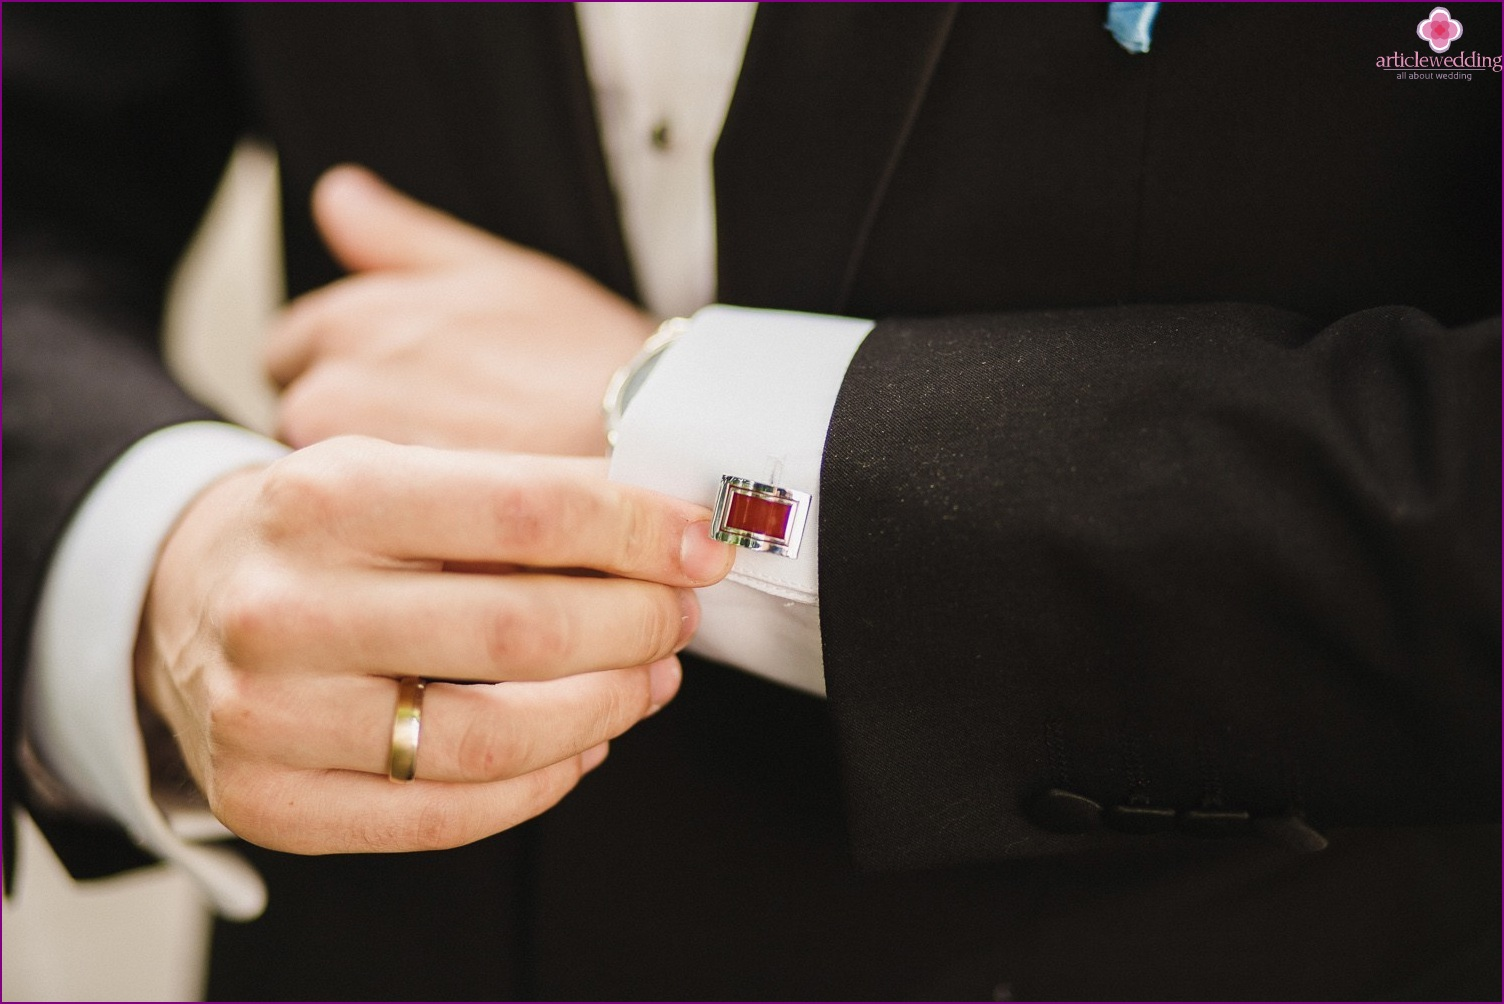 Cufflinks for the groom